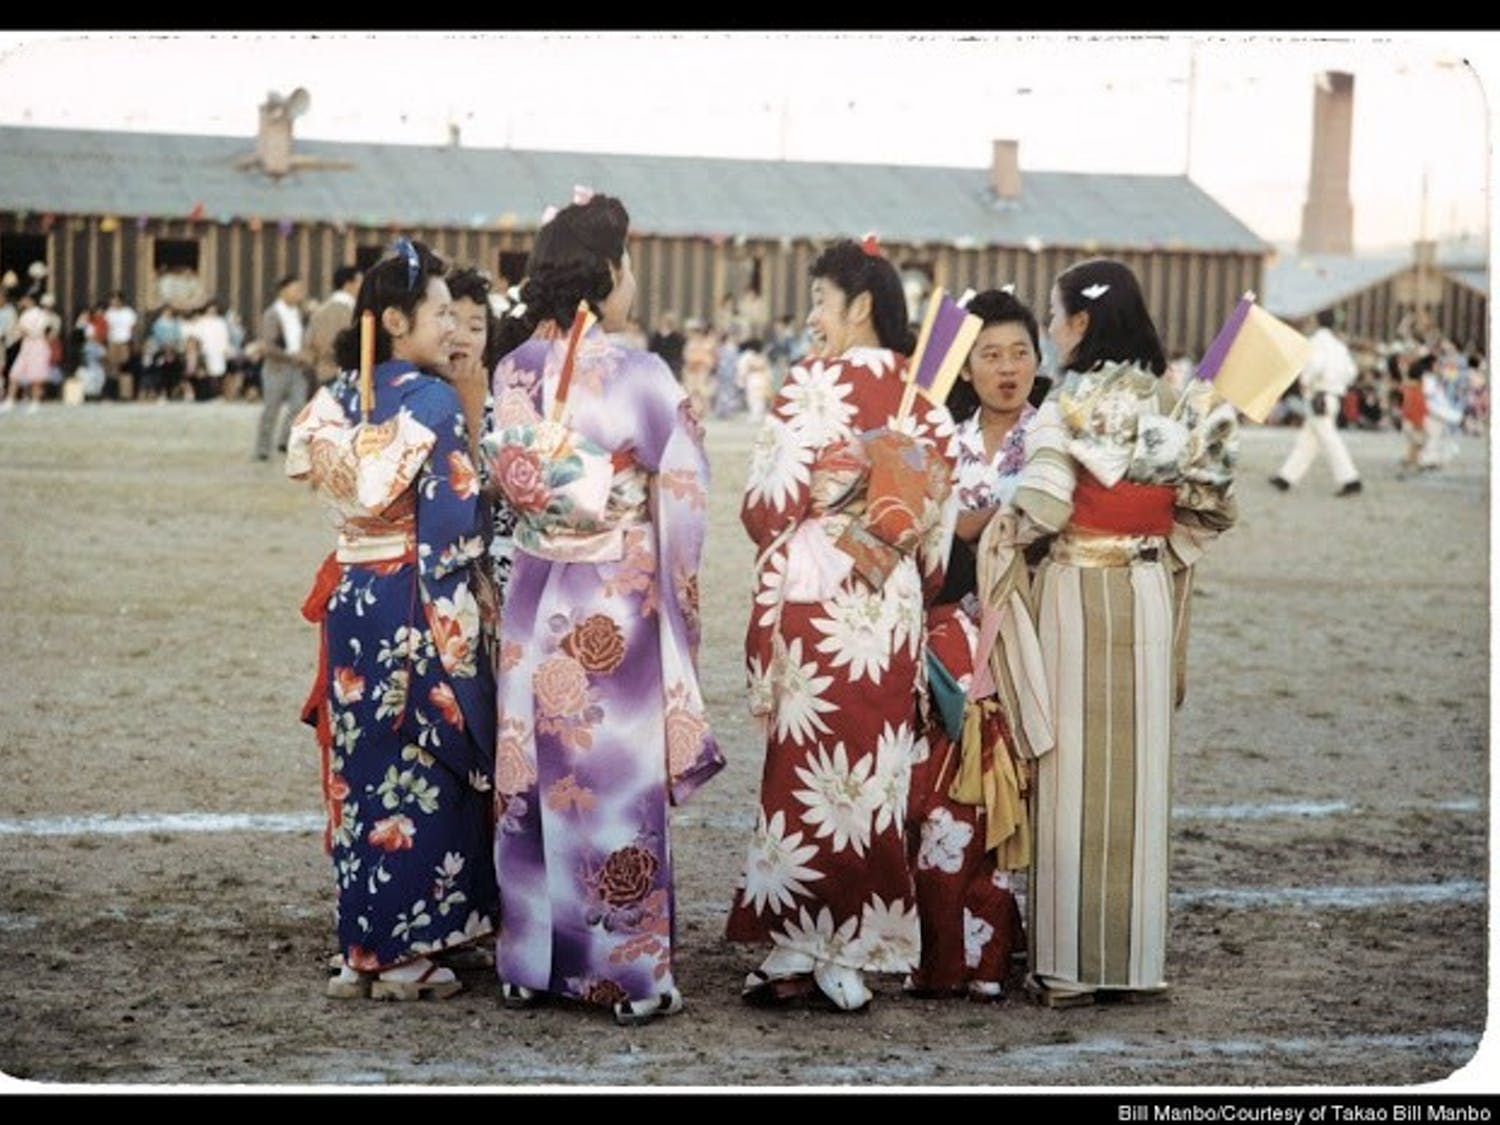 Bill Manbo's photographs were found by Eric Muller, a UNC law professor, and depict Japanese-American culture as opposed to the typical propaganda photos of the time period.